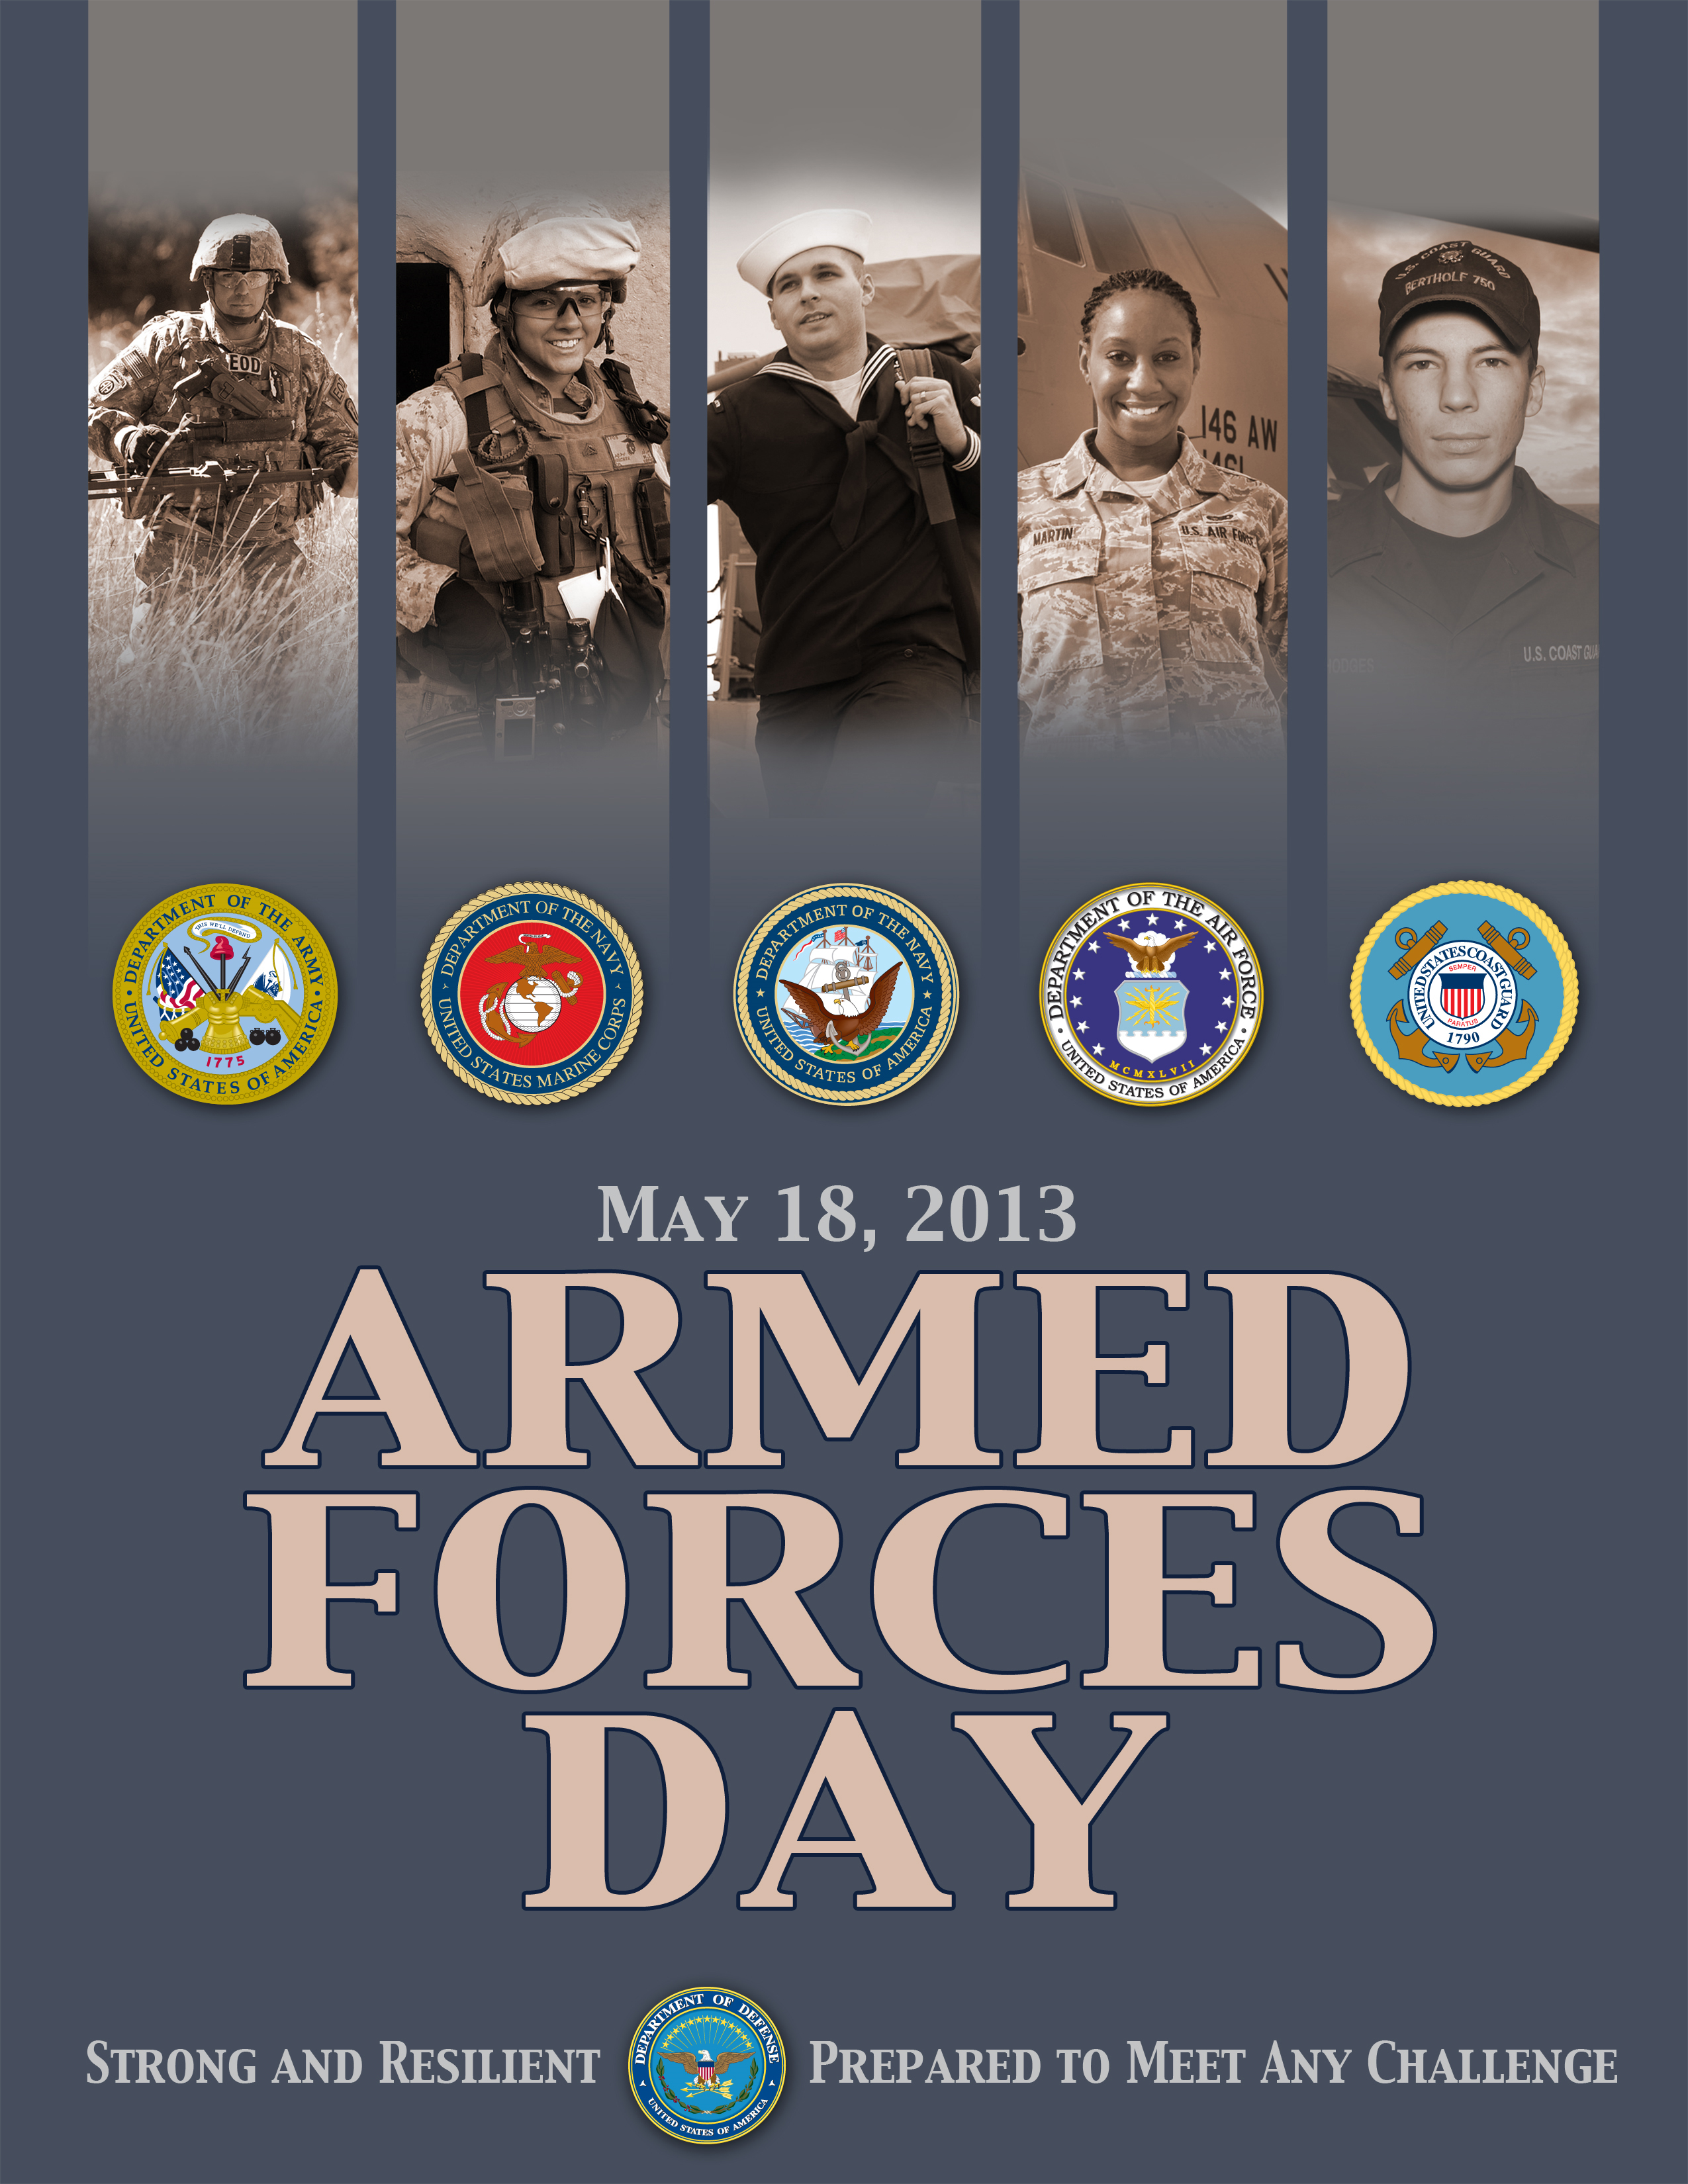 Poster for Armed Forces Day 2013, May 18